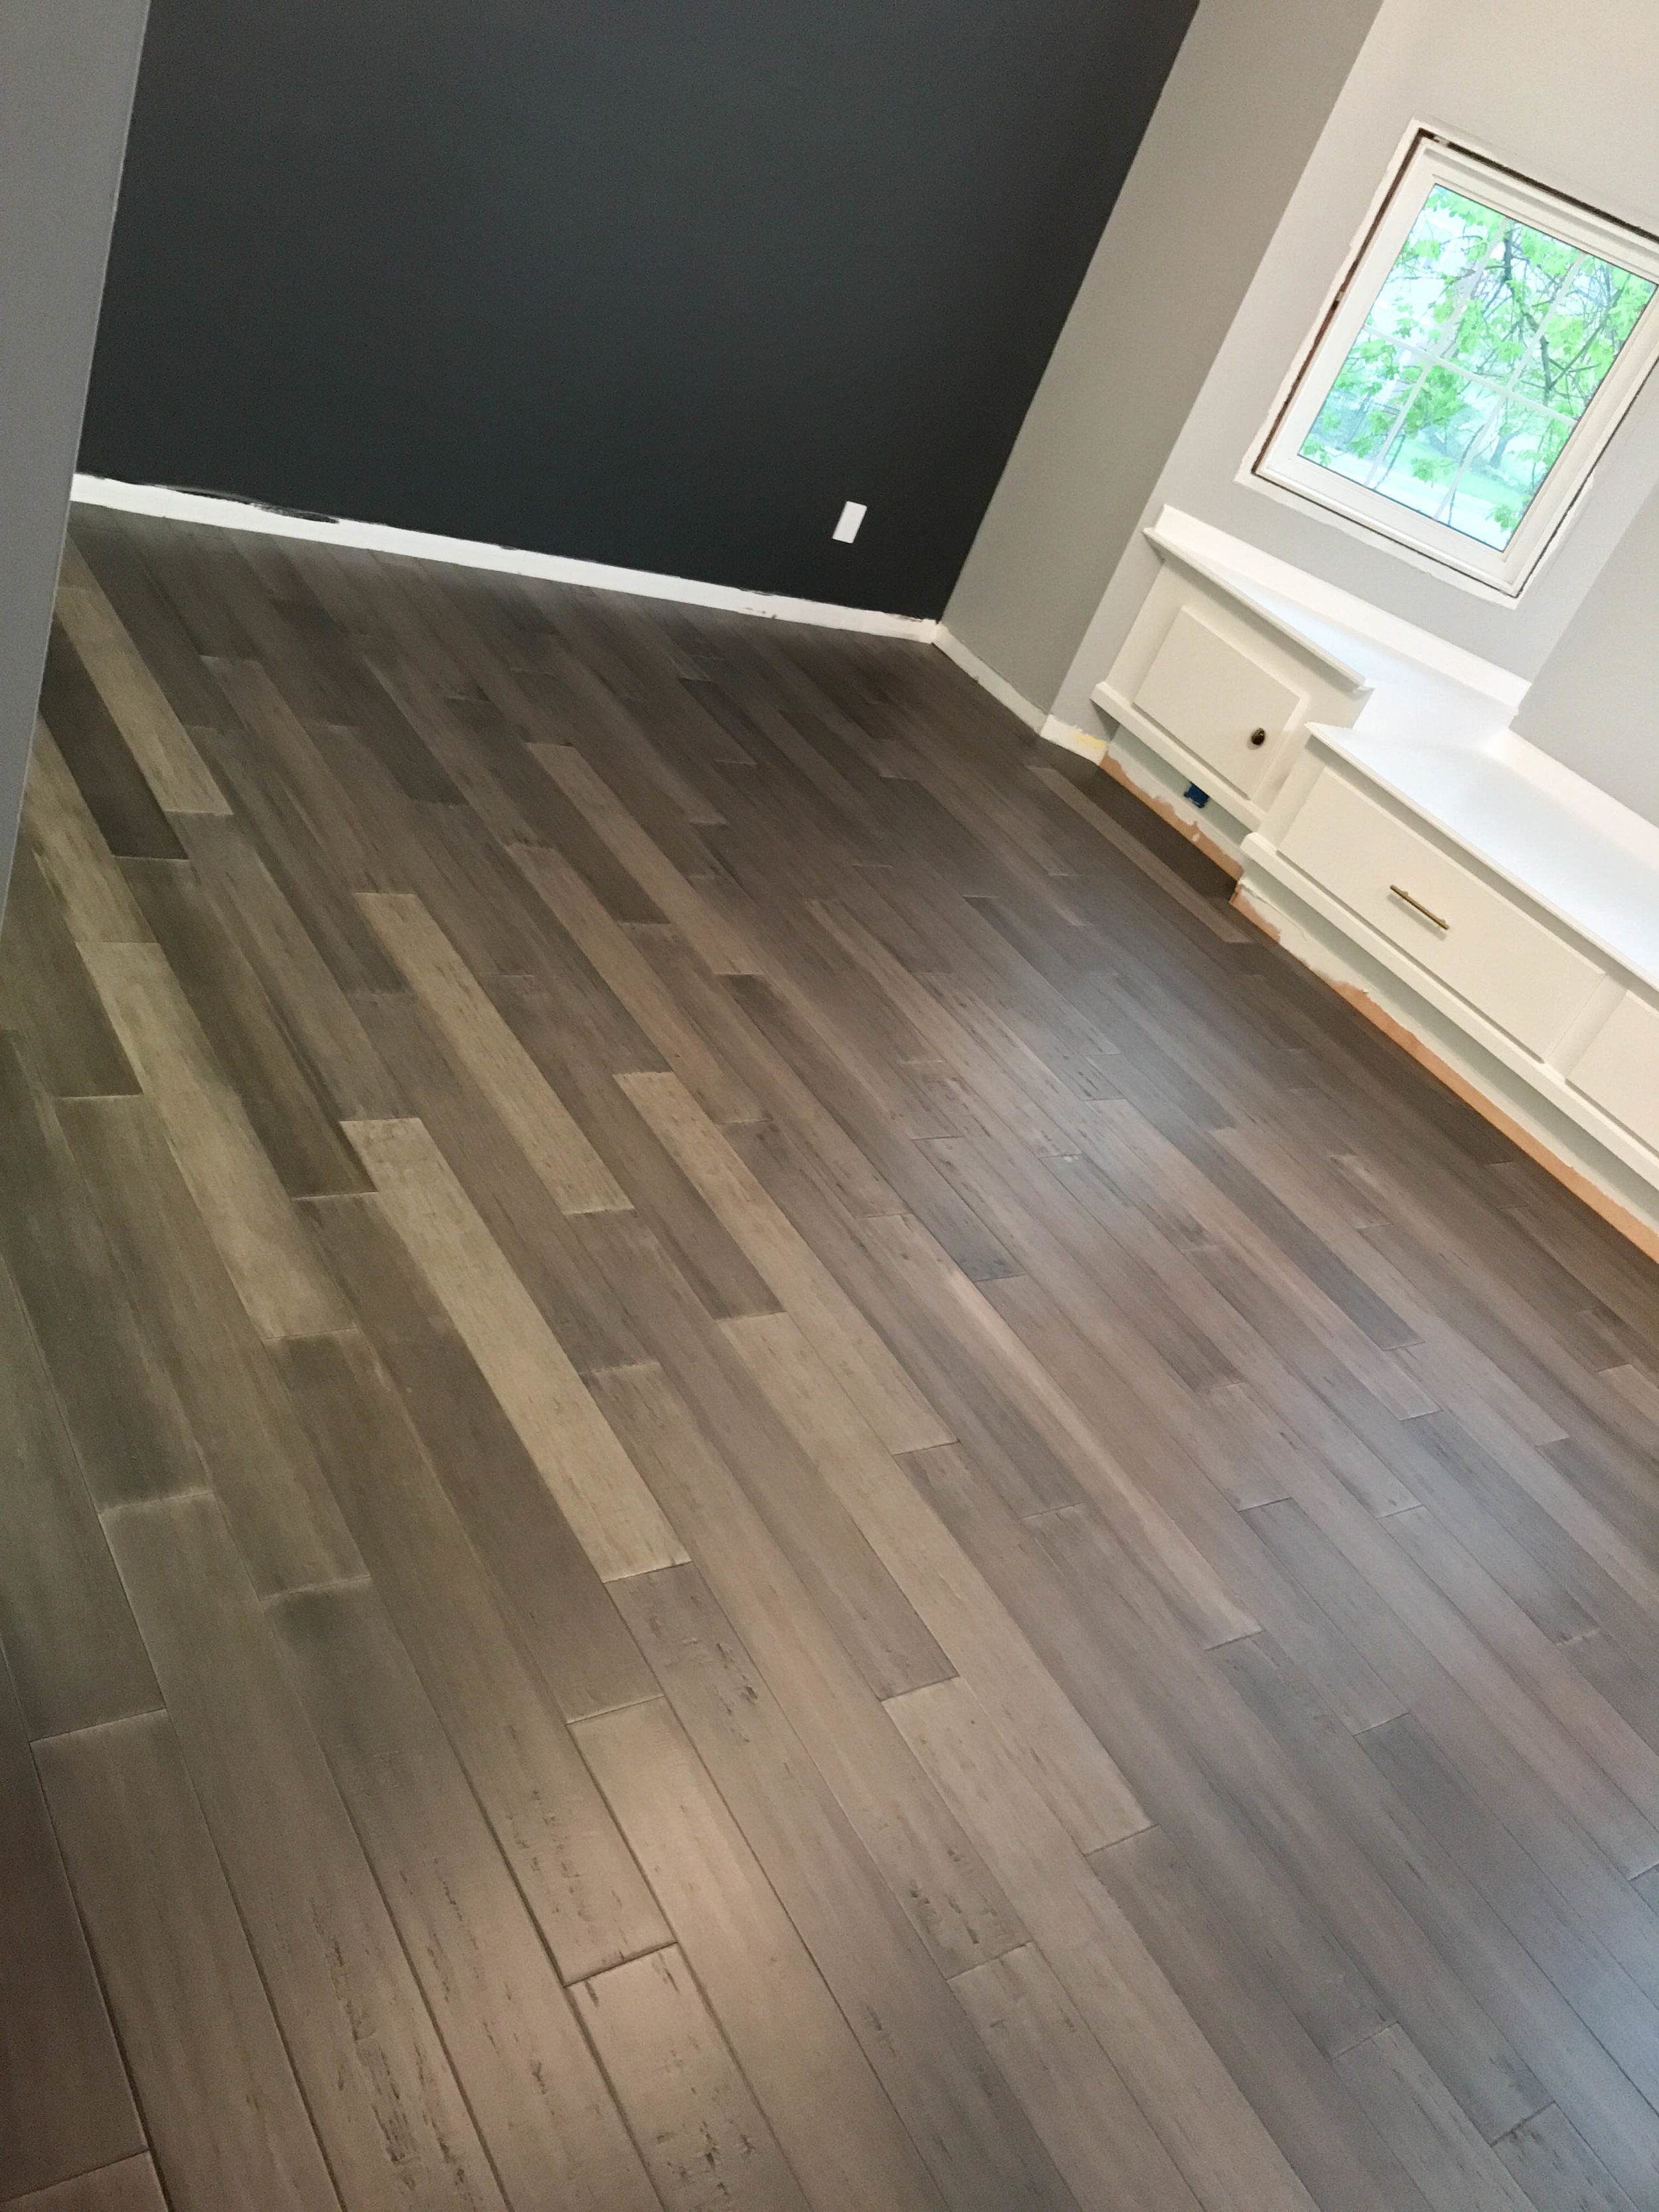 gray hardwood flooring, black wall